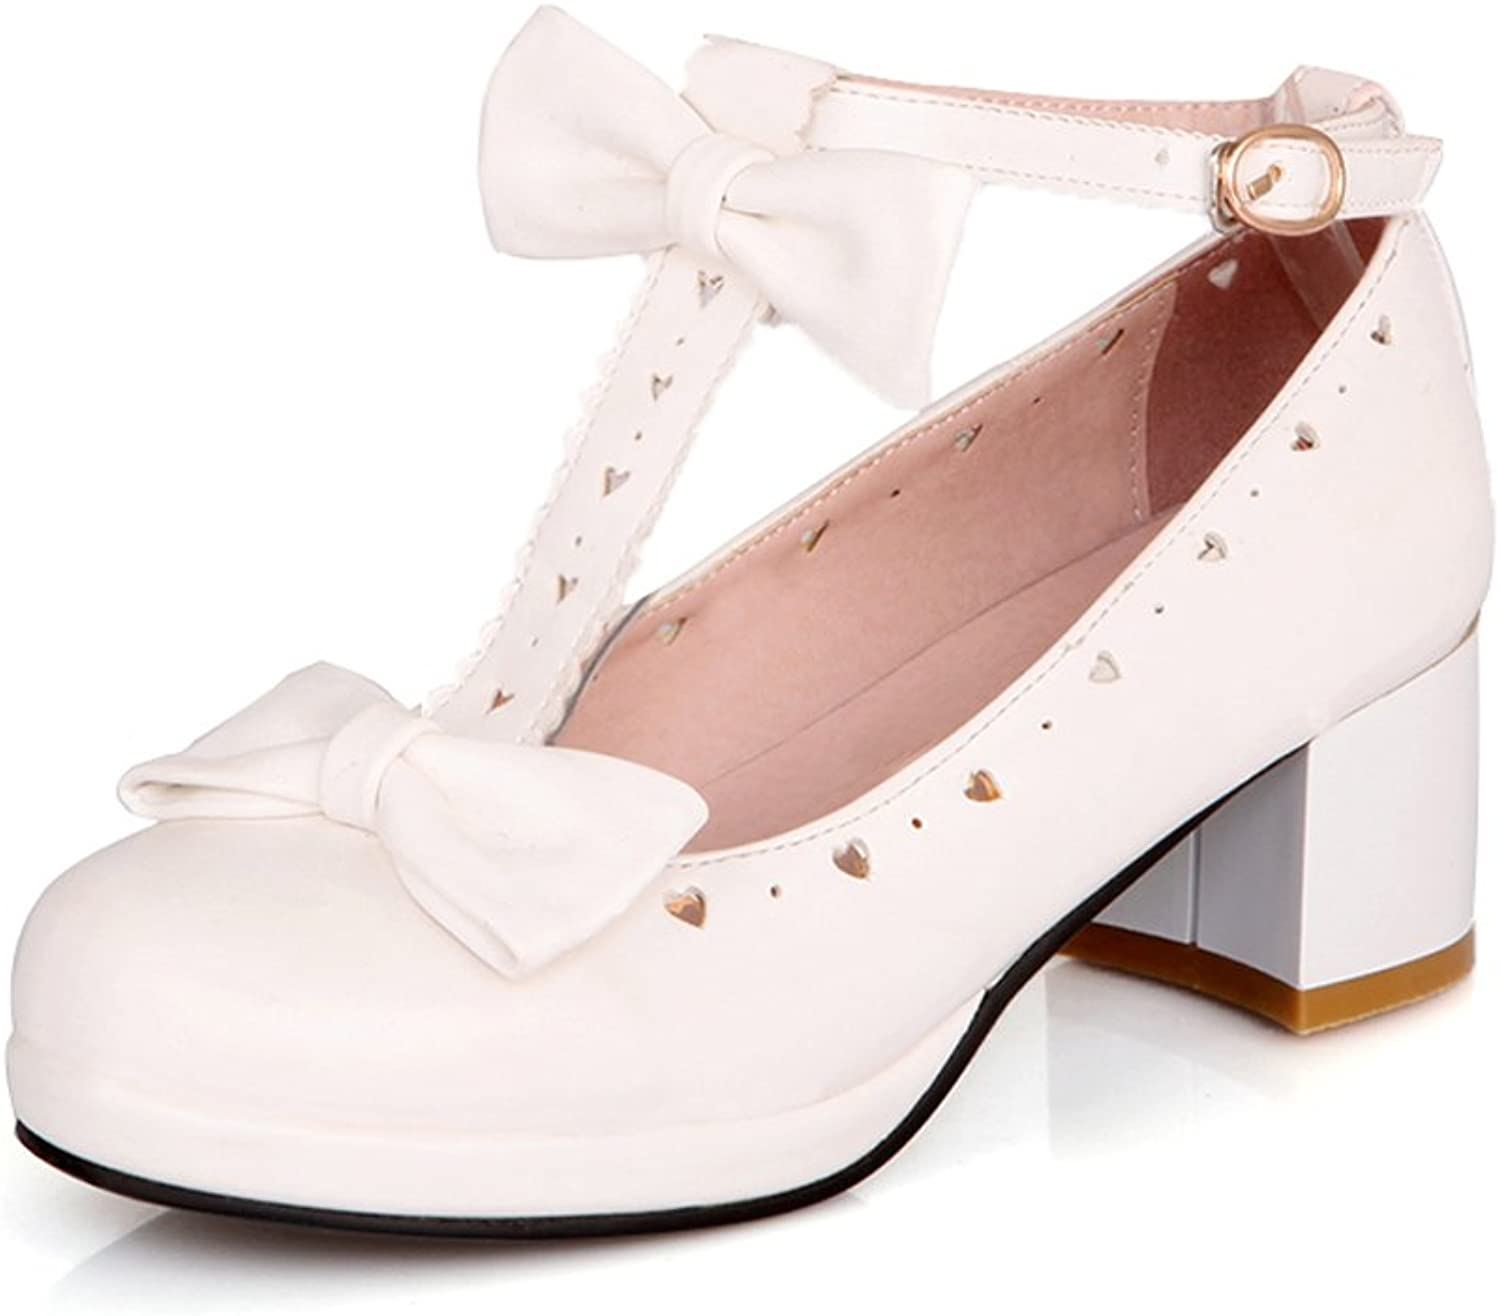 Lucksender Womens Round Toe Vintage Style Mary Jane Ankle Strap Pumps shoes